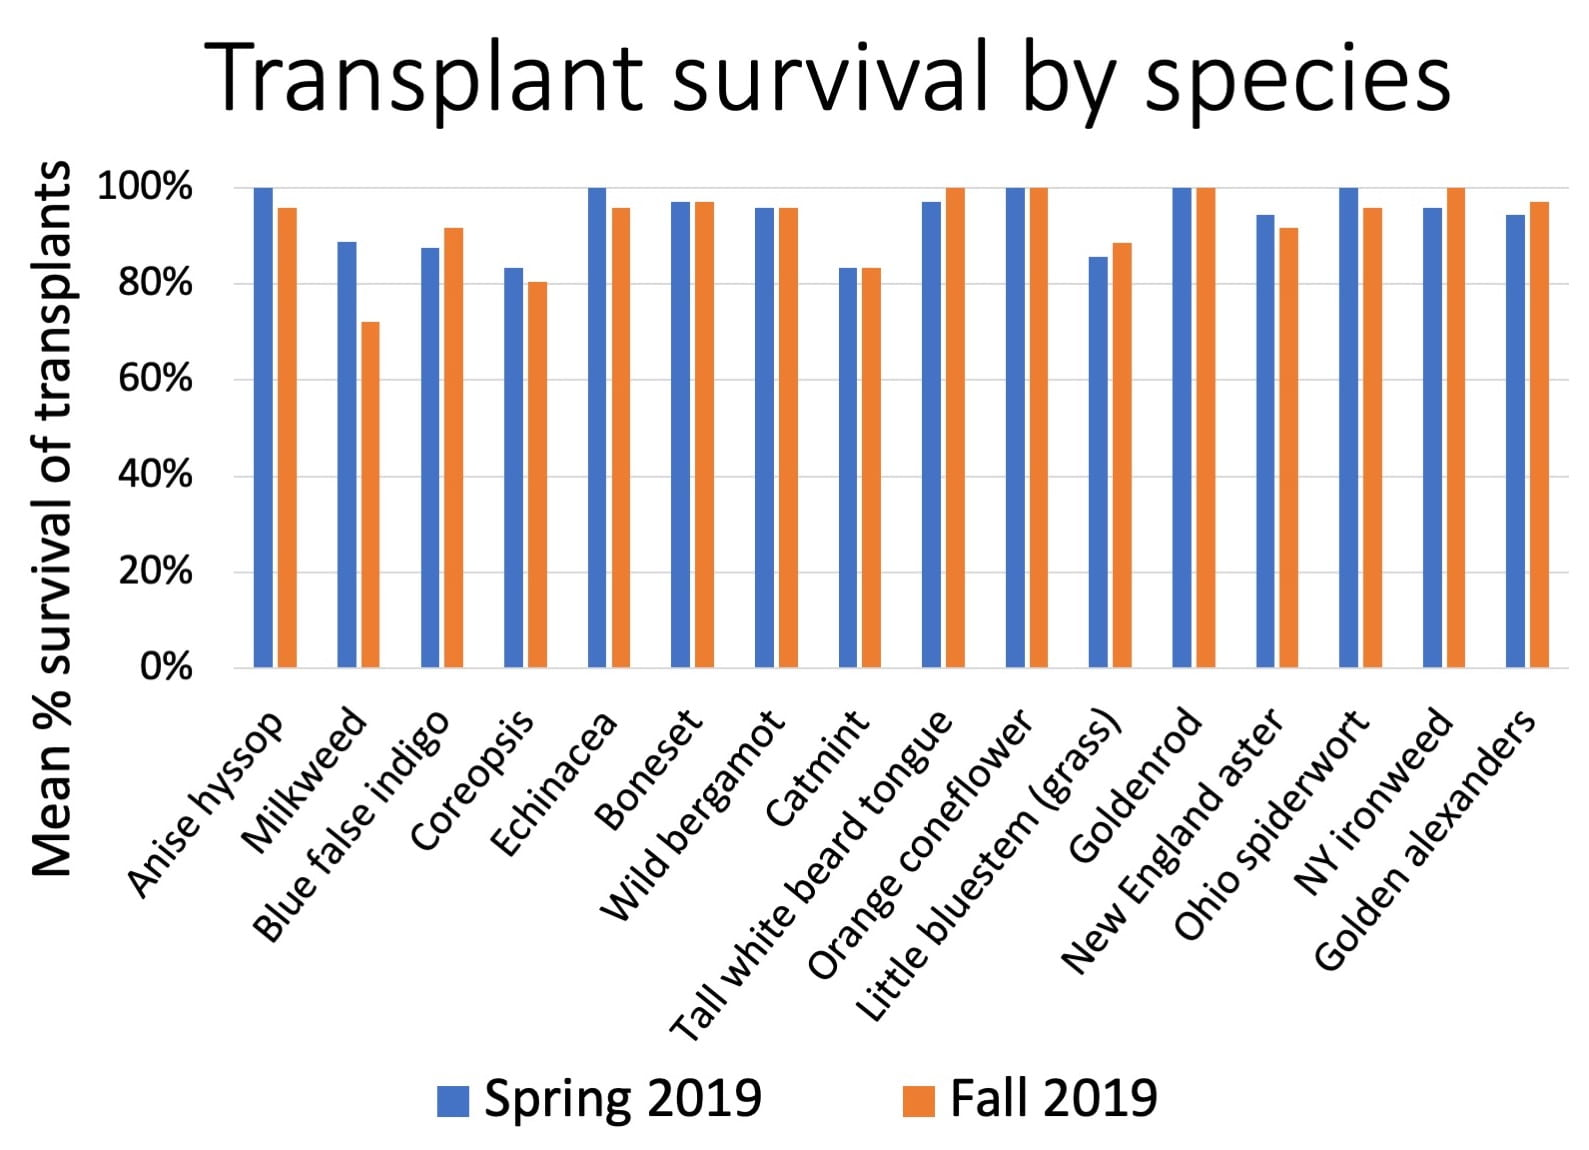 Bar graph showing the mean percent of plants of each species that were still alive in Spring and Fall 2019. With the exception of milkweed, all survival rates were at or above 80%, and losses were minimal from Spring to Fall.